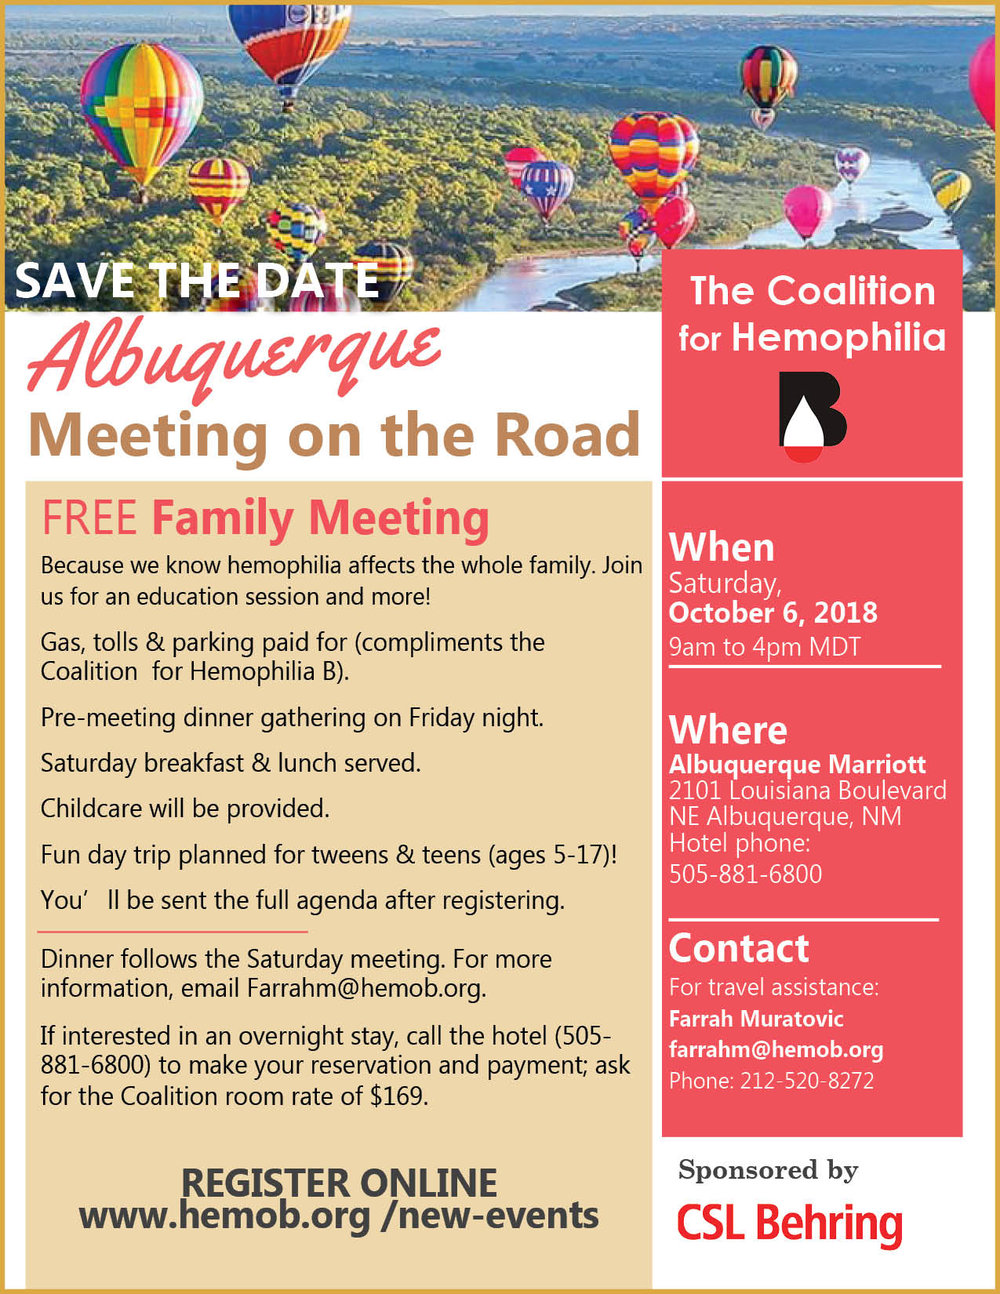 - CLICK HERE to download the official flyer for our family meeting in Albuquerque in October!